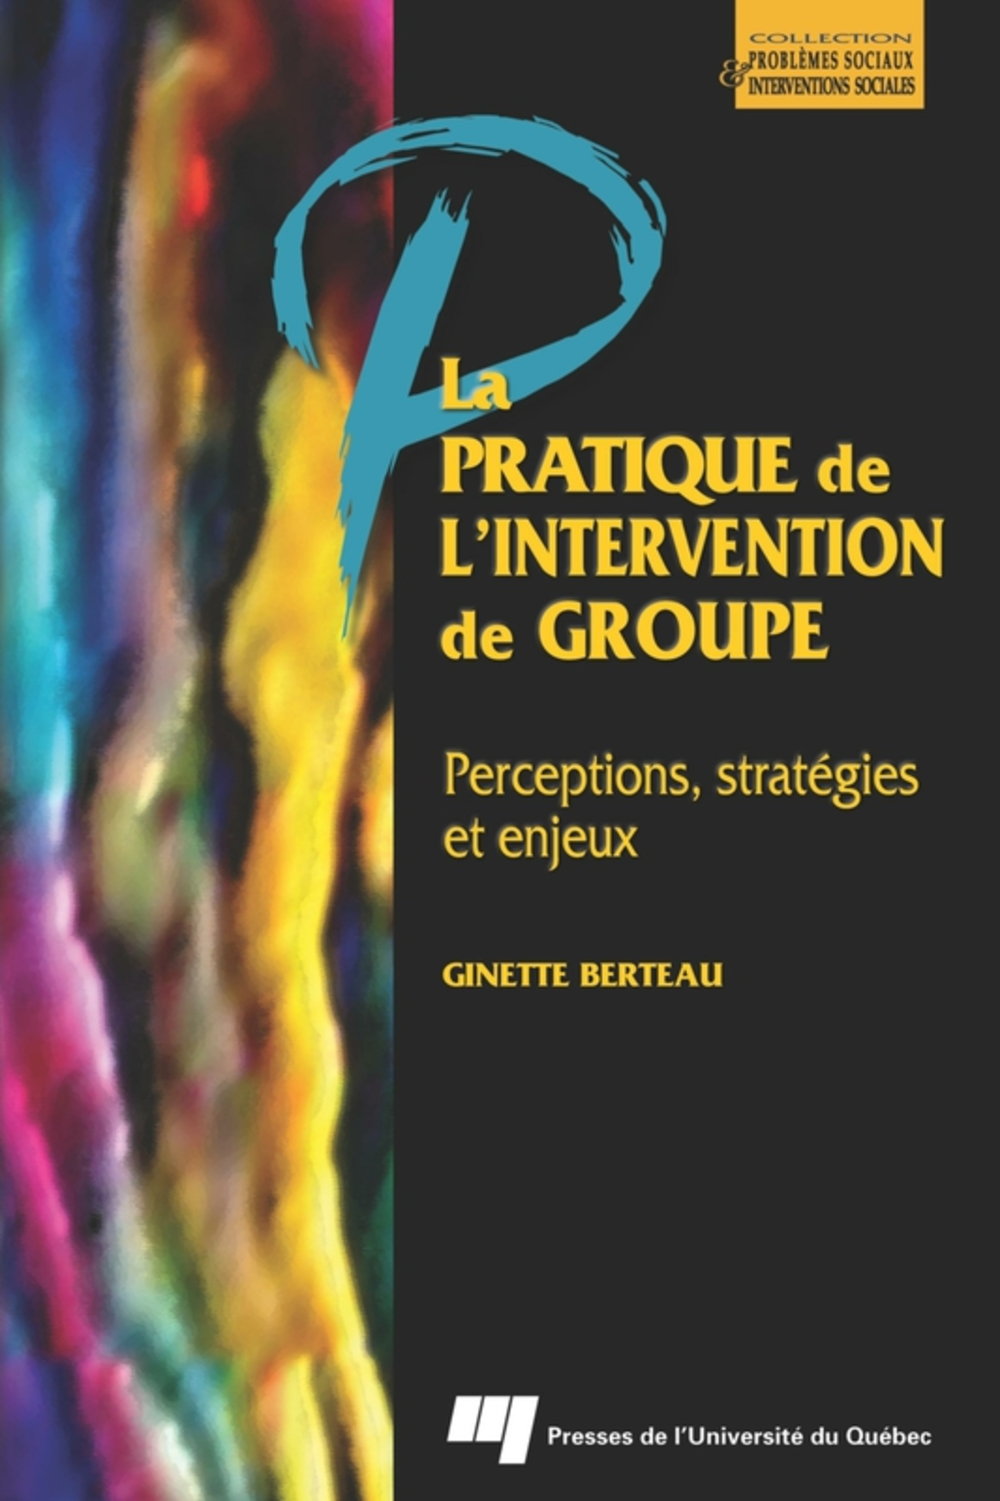 La pratique de l'intervention de groupe